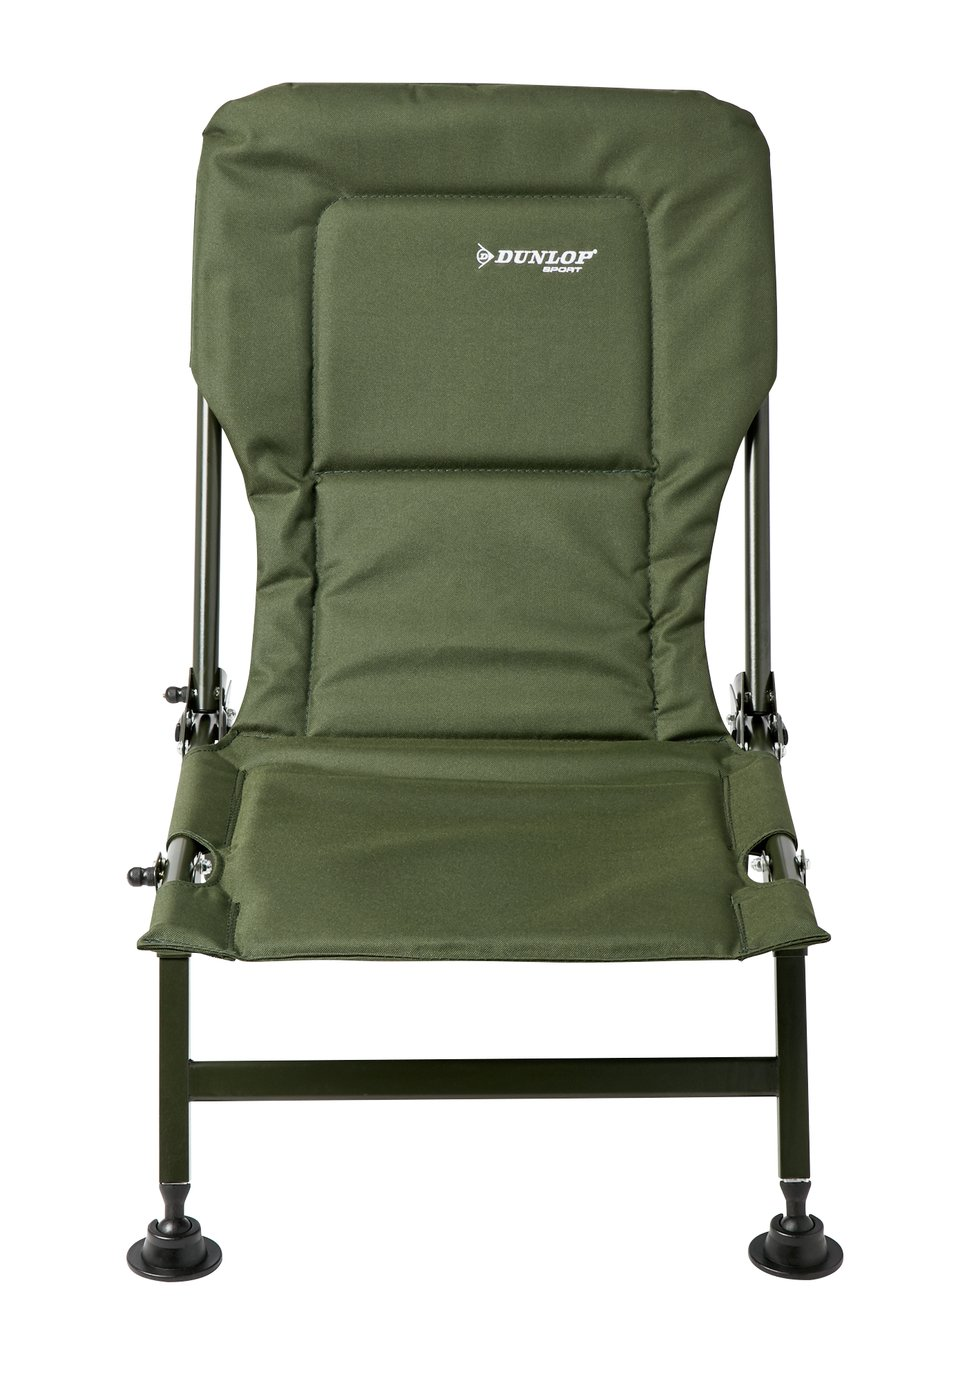 fishing chair rucksack desk seat height results for carp dunlop